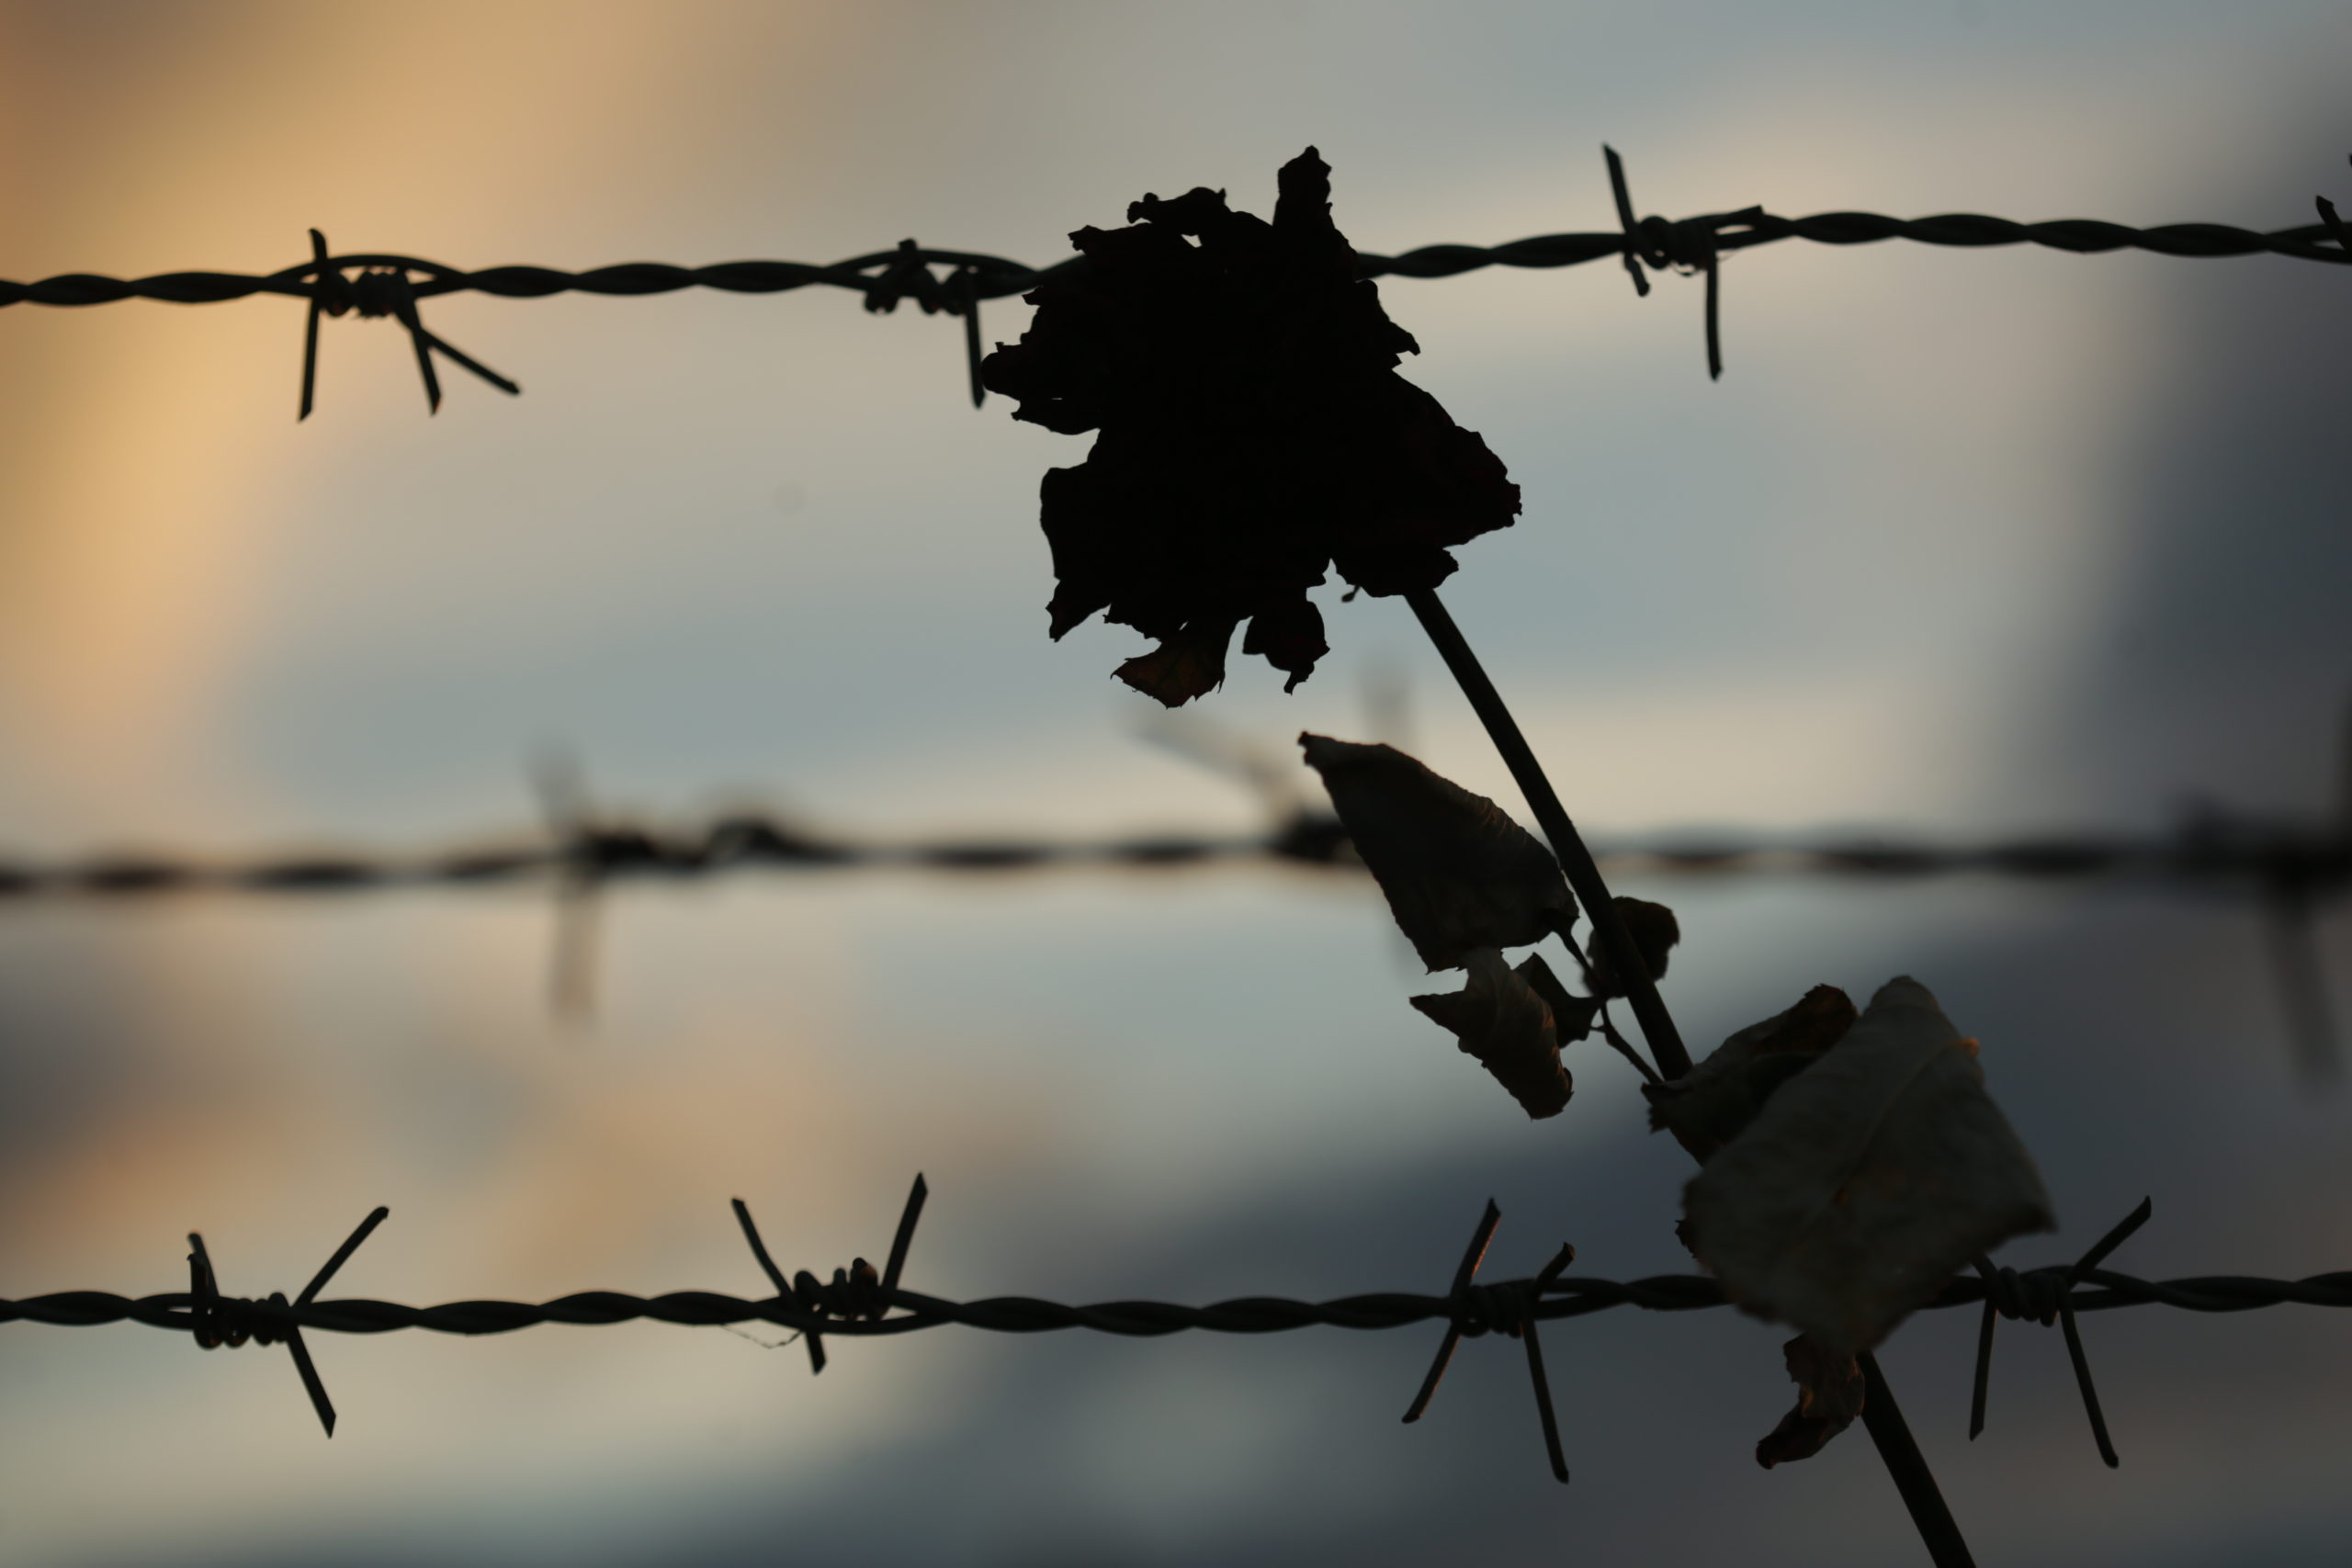 Photo of flower in front of barbed wire fence taken in Auschwitz-Birkenau by Jaroslaw Praszkiewicz.